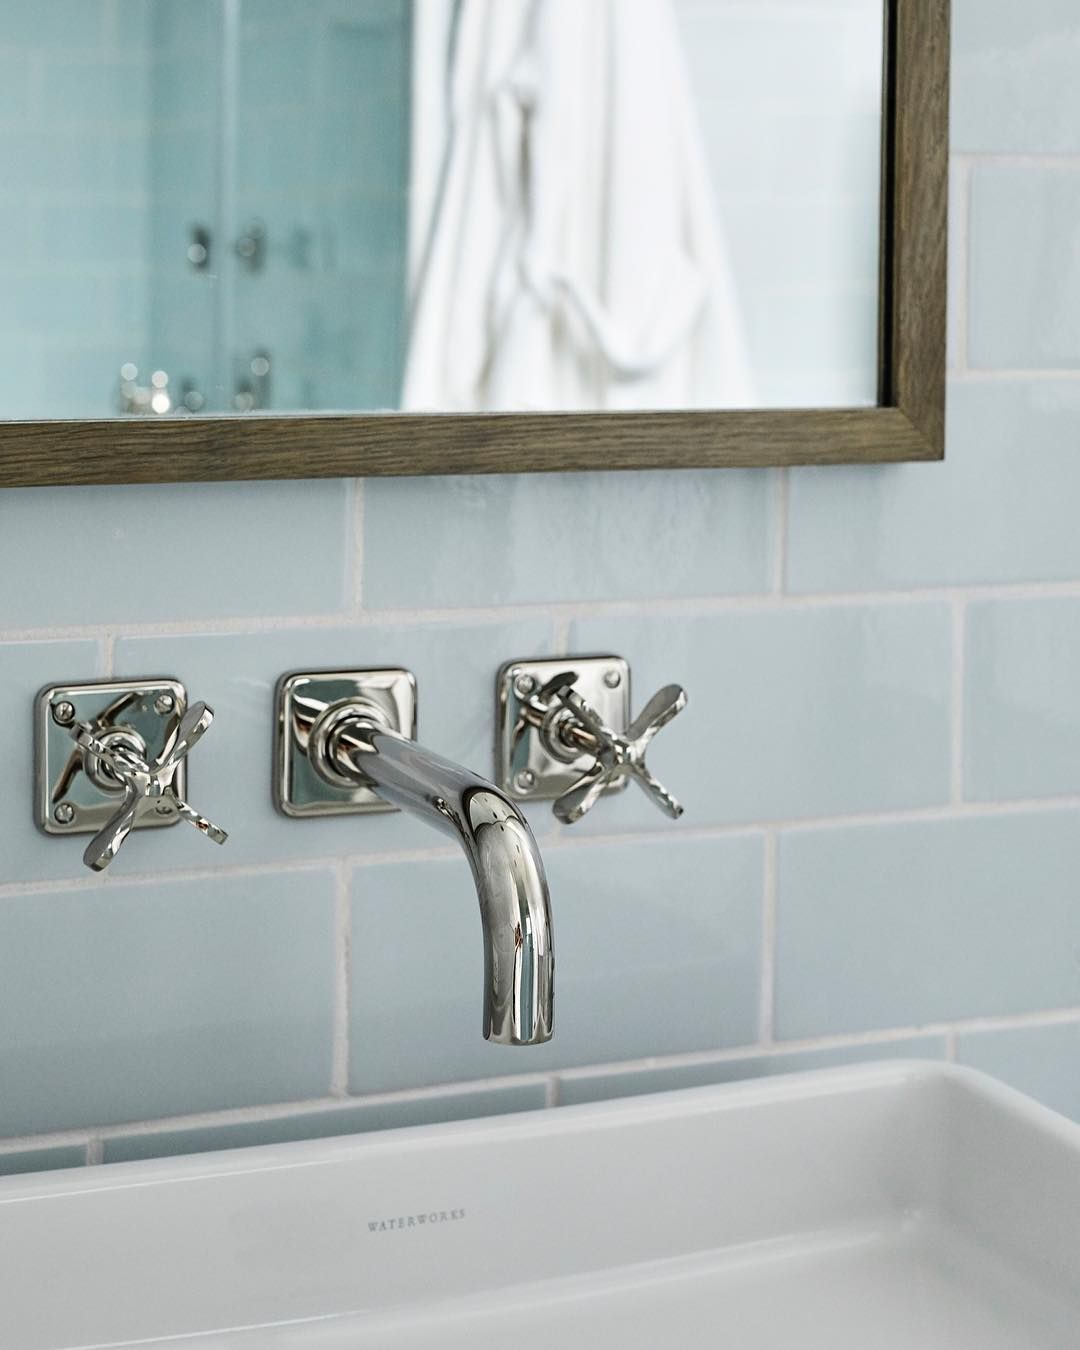 Waterworks On Instagram See Things From A New Perspective With A Wall Mounted Bathroom Faucet Ludlow Wall Mount Faucet Bathroom Bathroom Faucets Waterworks